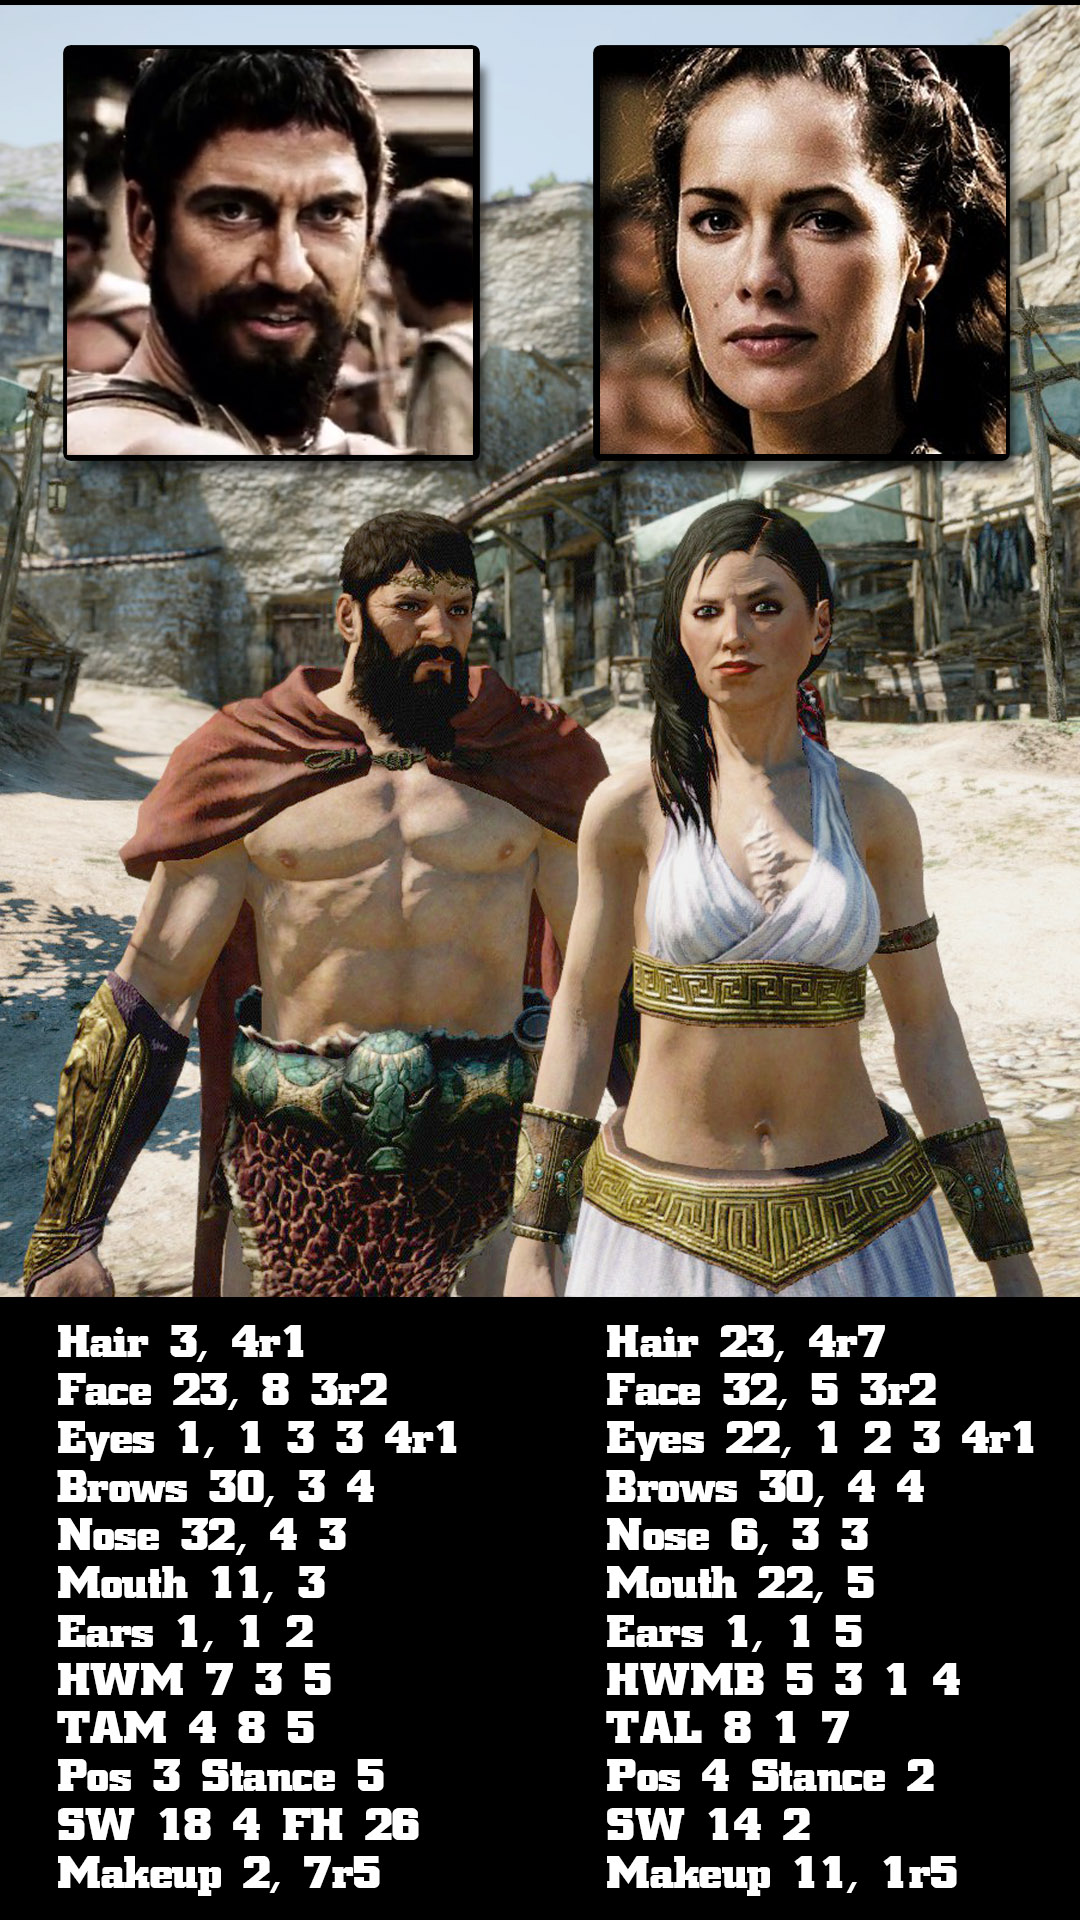 These Dragons Dogma Character Creation Formulas Are Incredible vc4pKXf